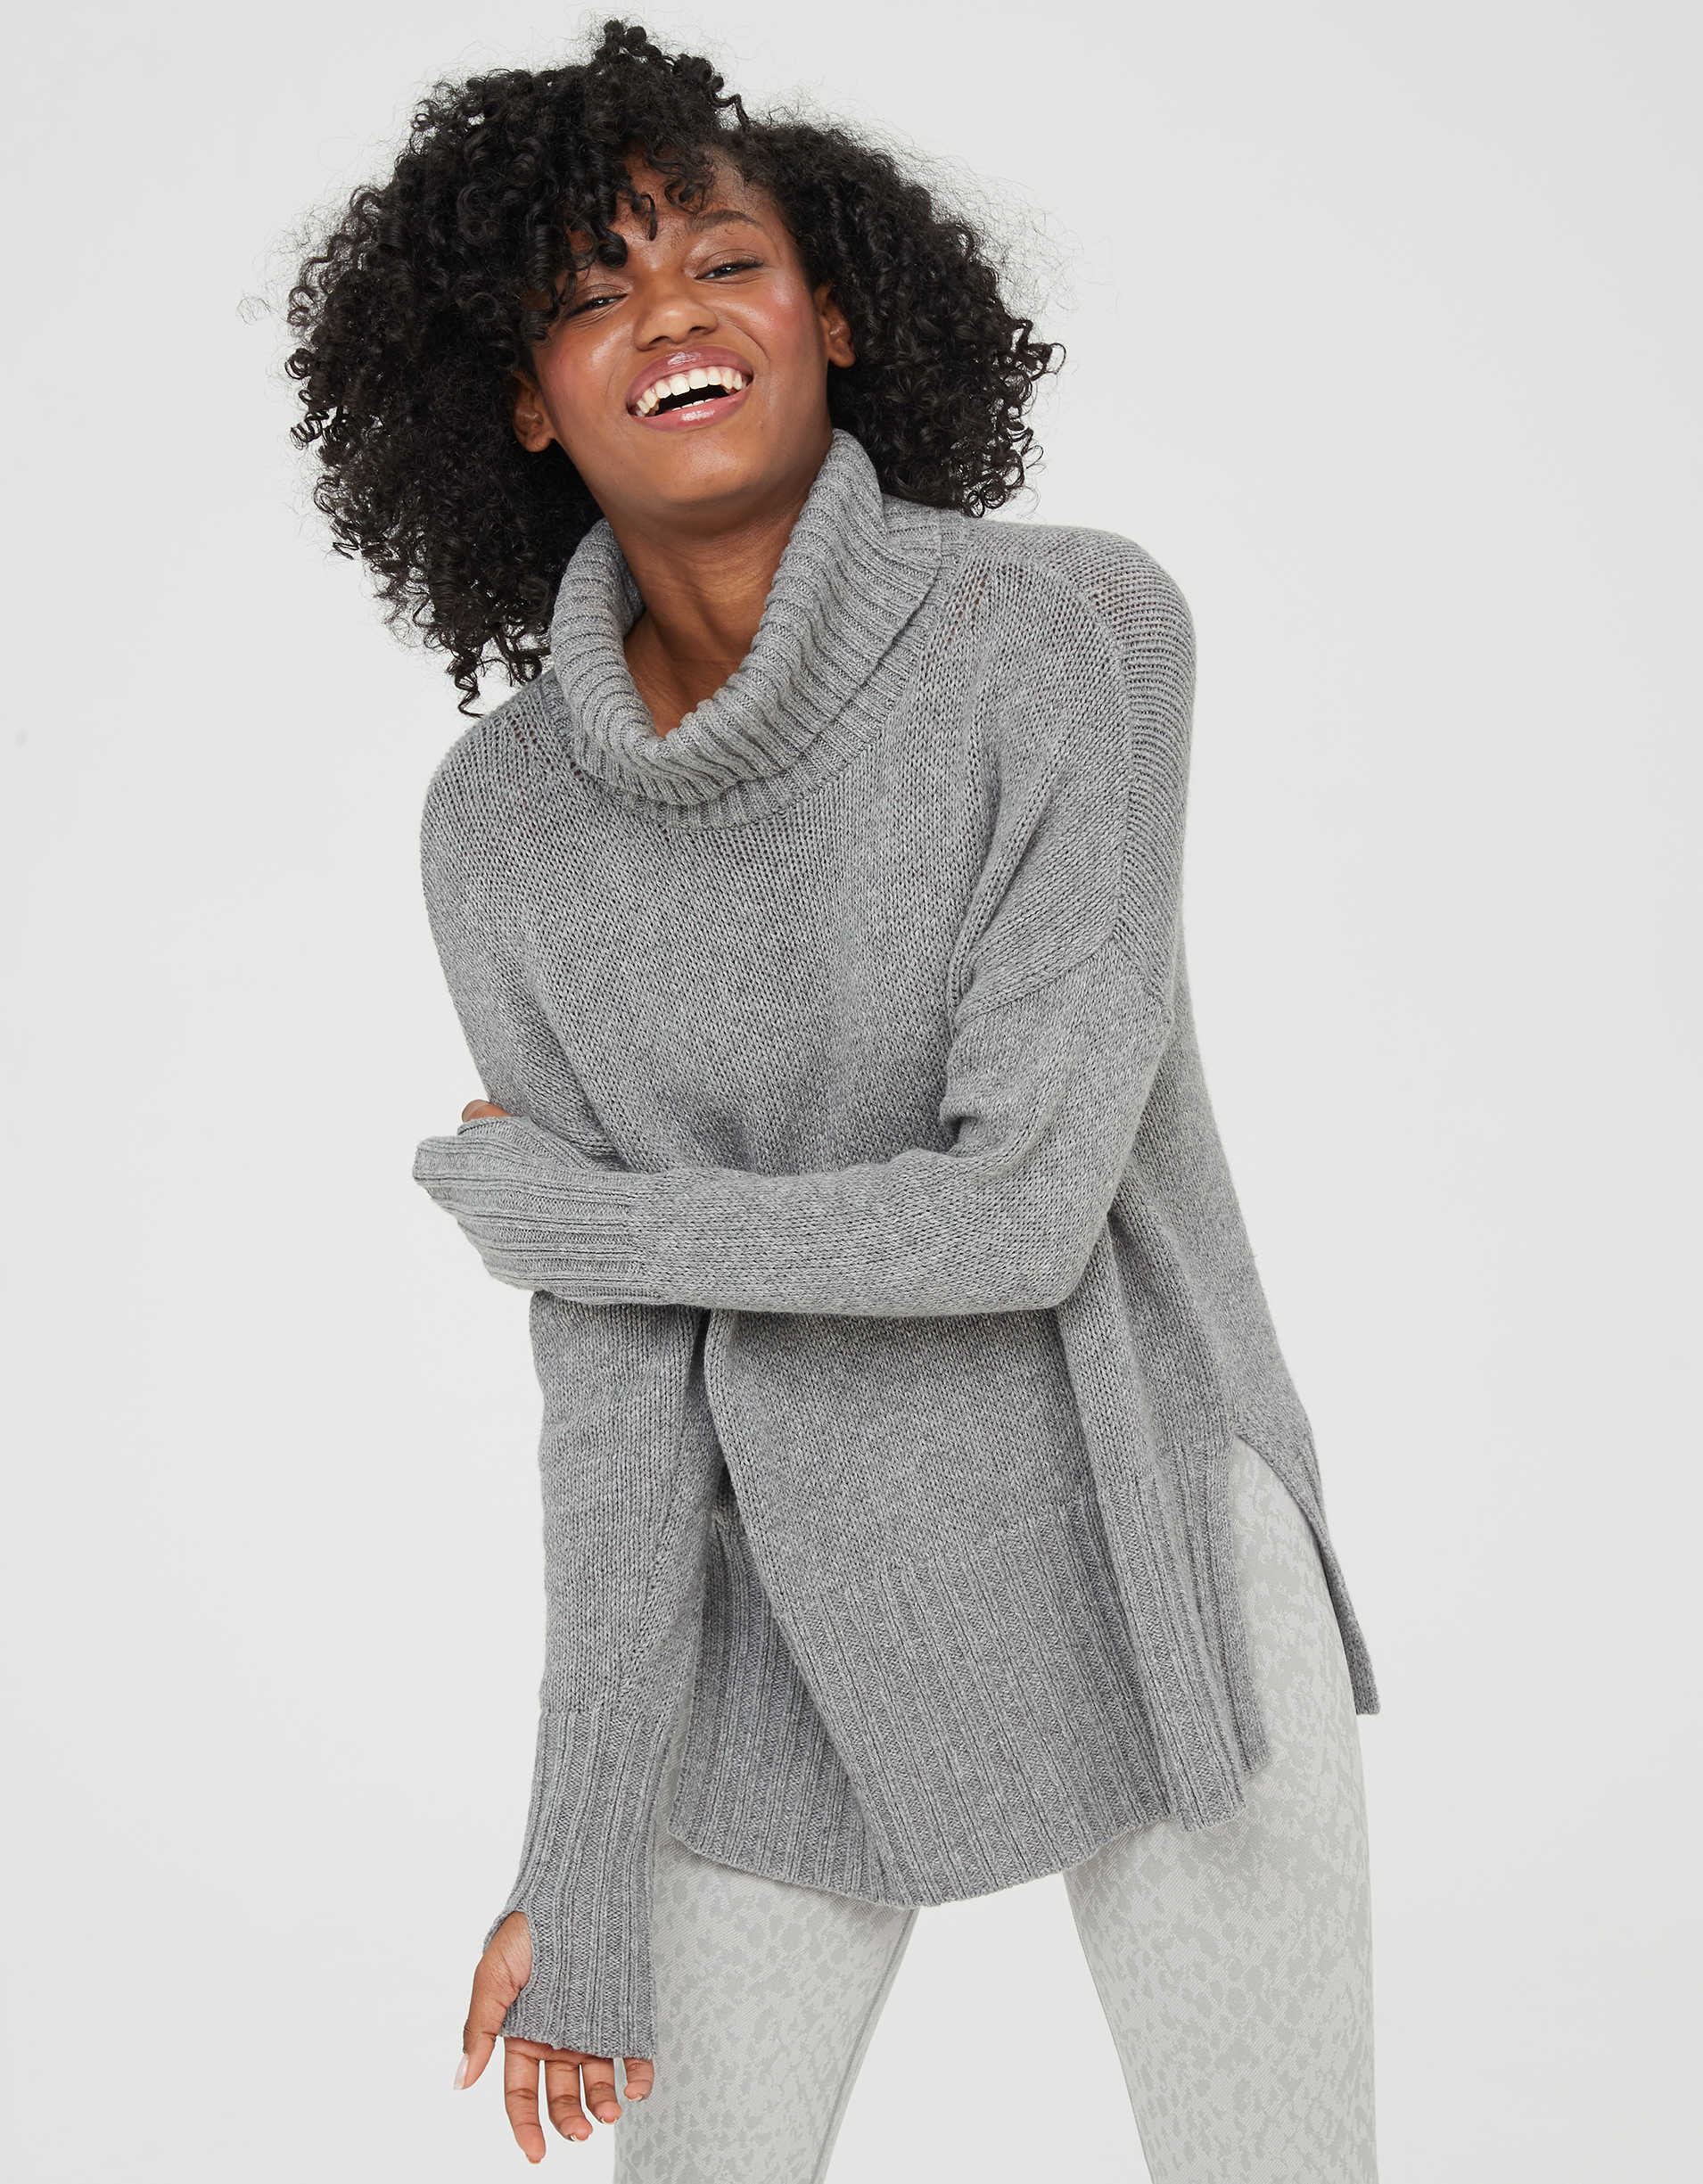 Model wearing the oversized turtleneck in grey with slits on the side and thumbholes on the sleeves.